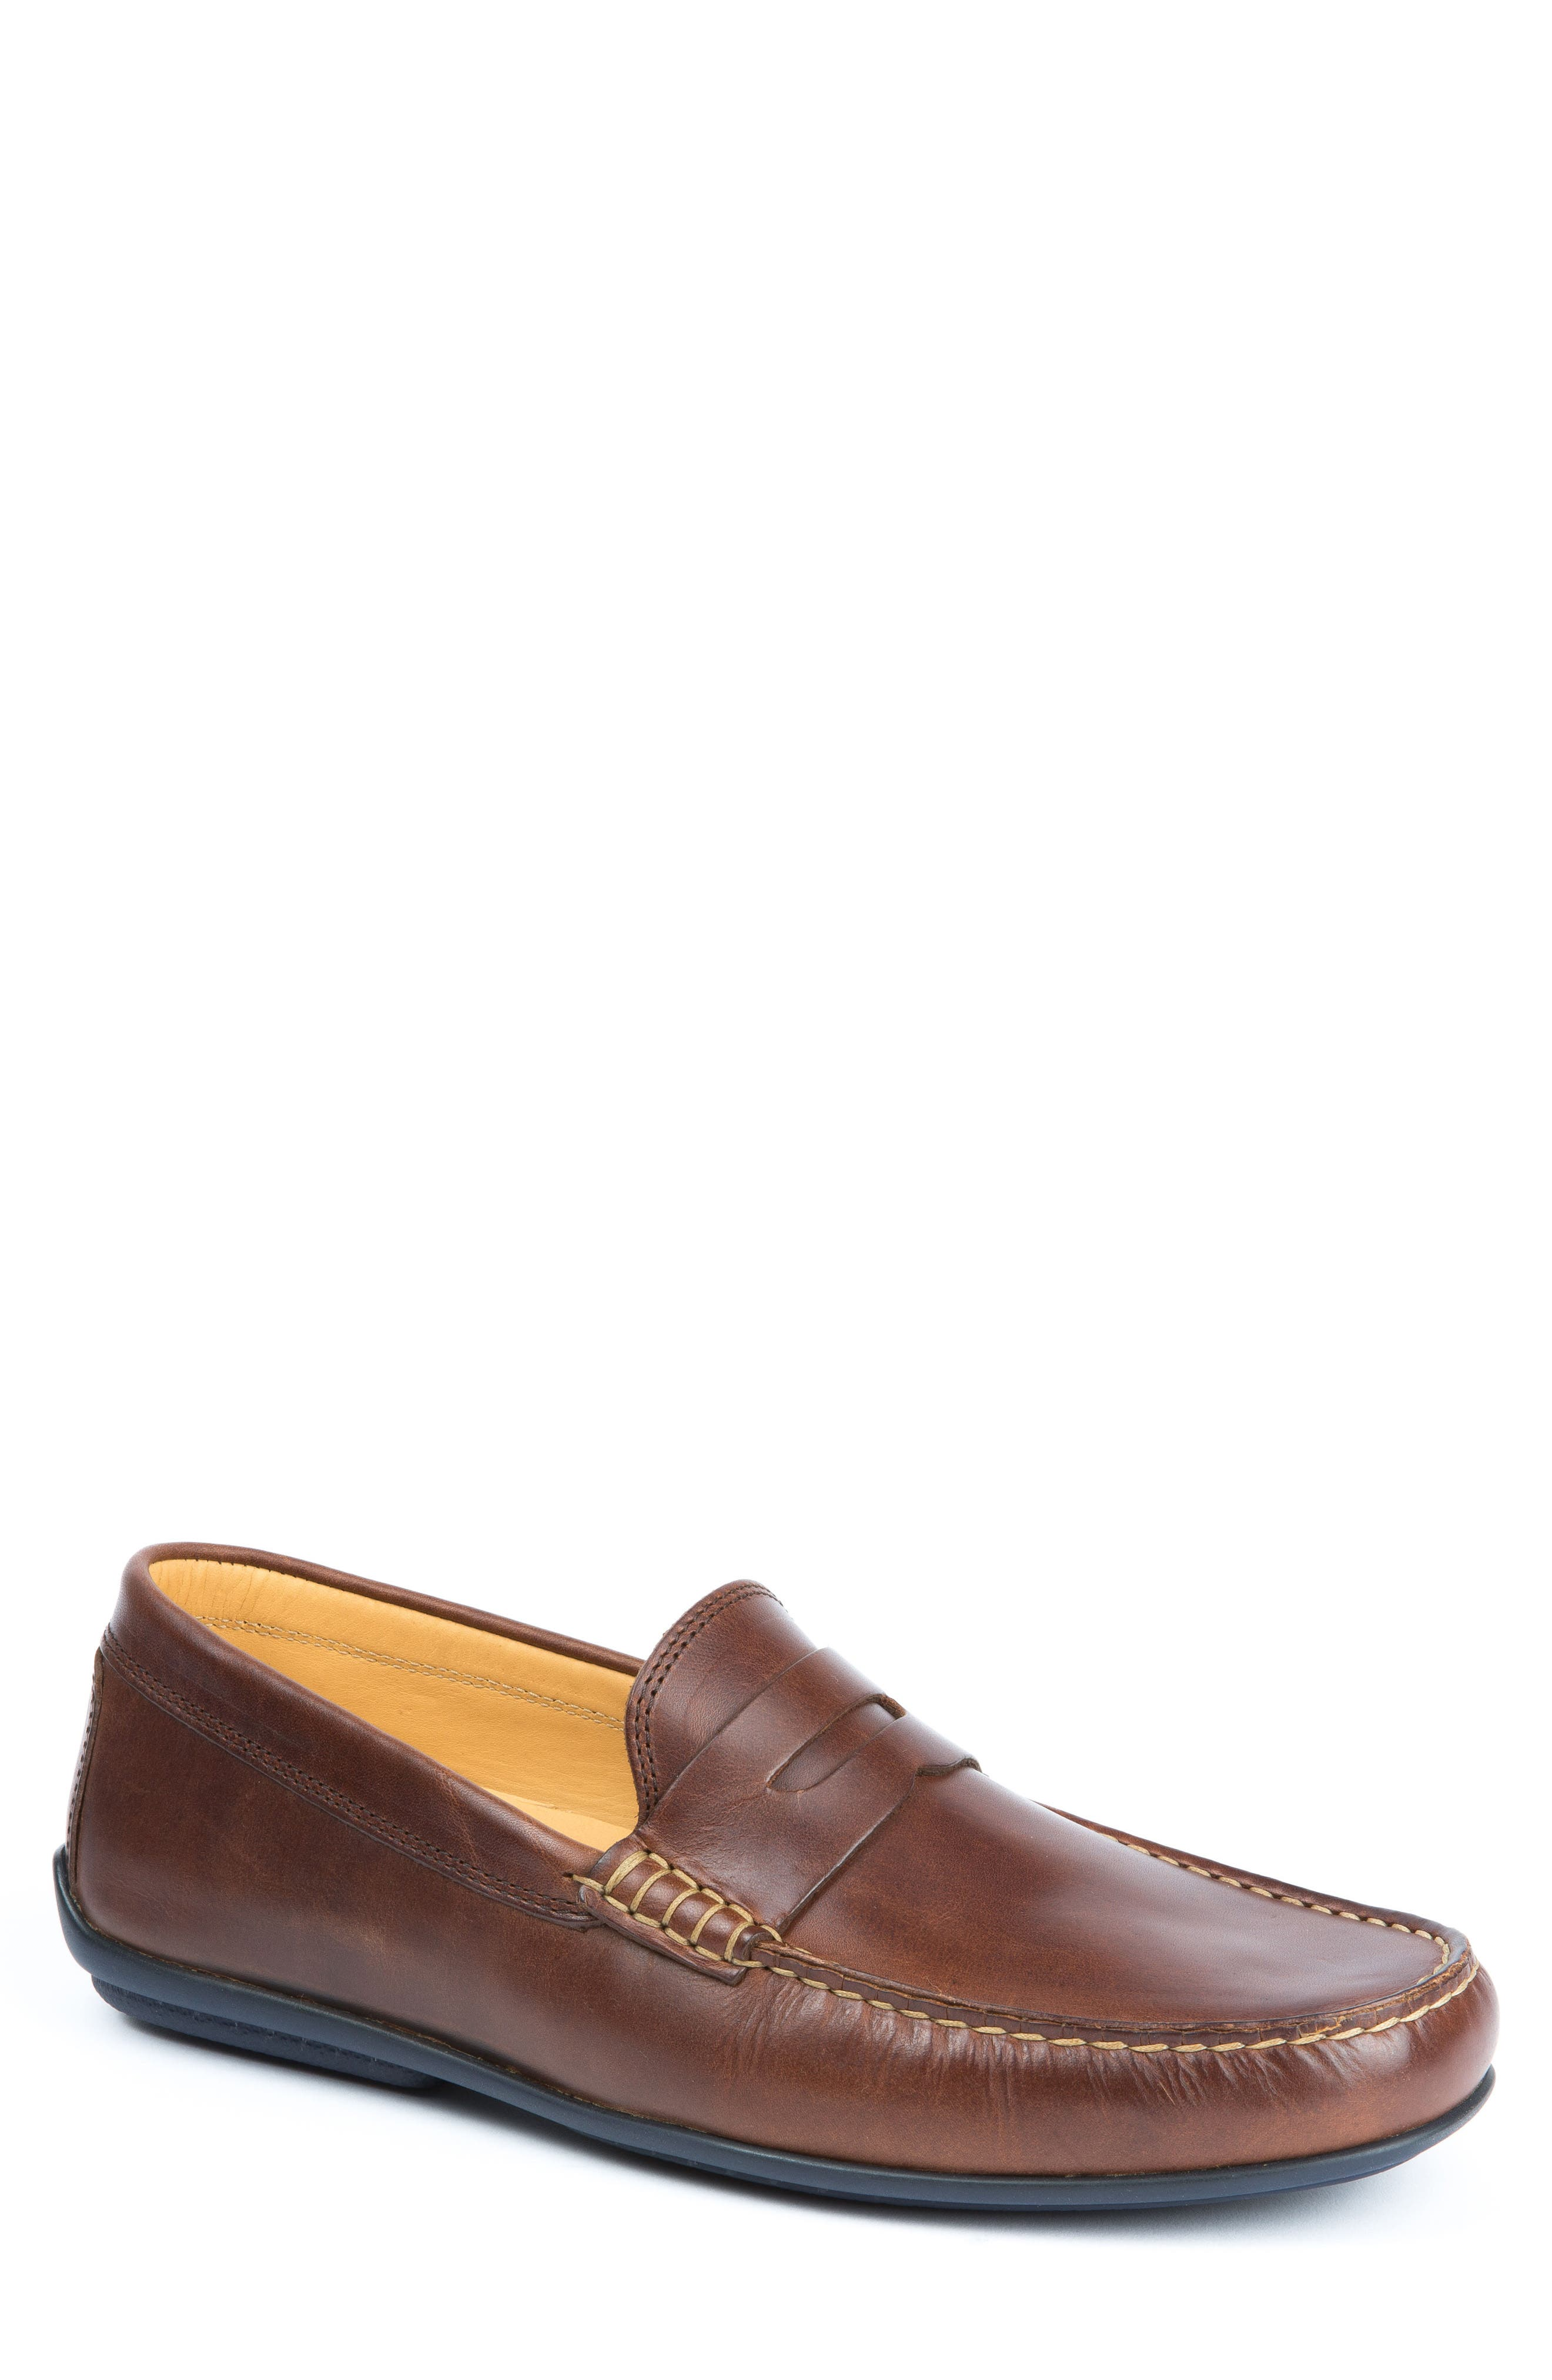 'Clinton' Leather Penny Loafer,                         Main,                         color, LIGHT BROWN